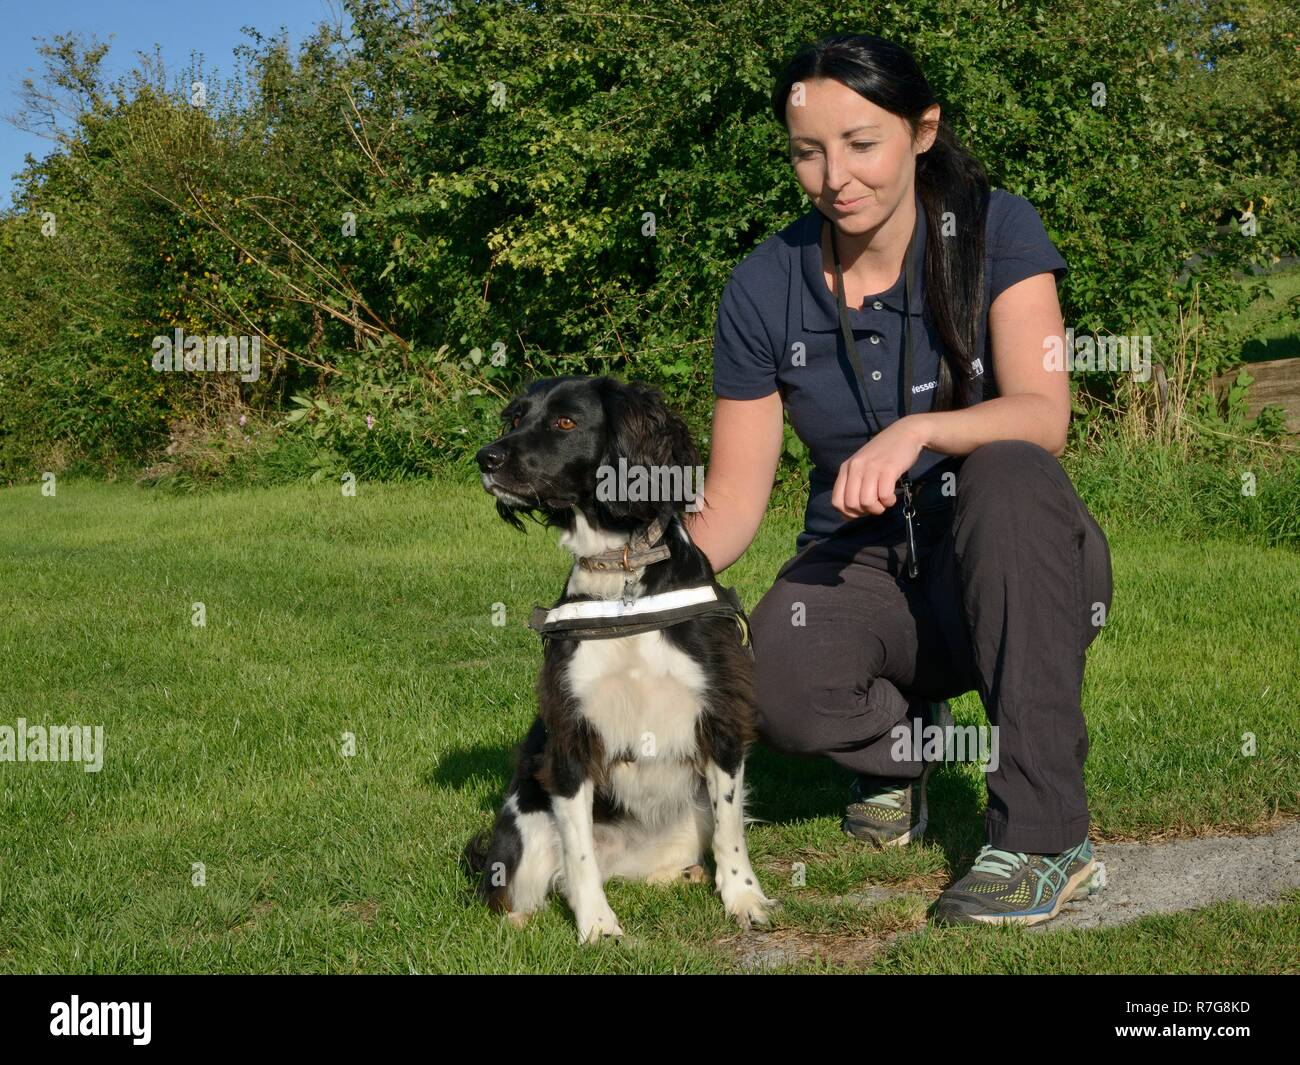 Nikki Glover of Wessex Water with sniffer dog Freya poised to seek Great crested newts (Triturus cristatus) during a training exercise, Somerset, UK. - Stock Image